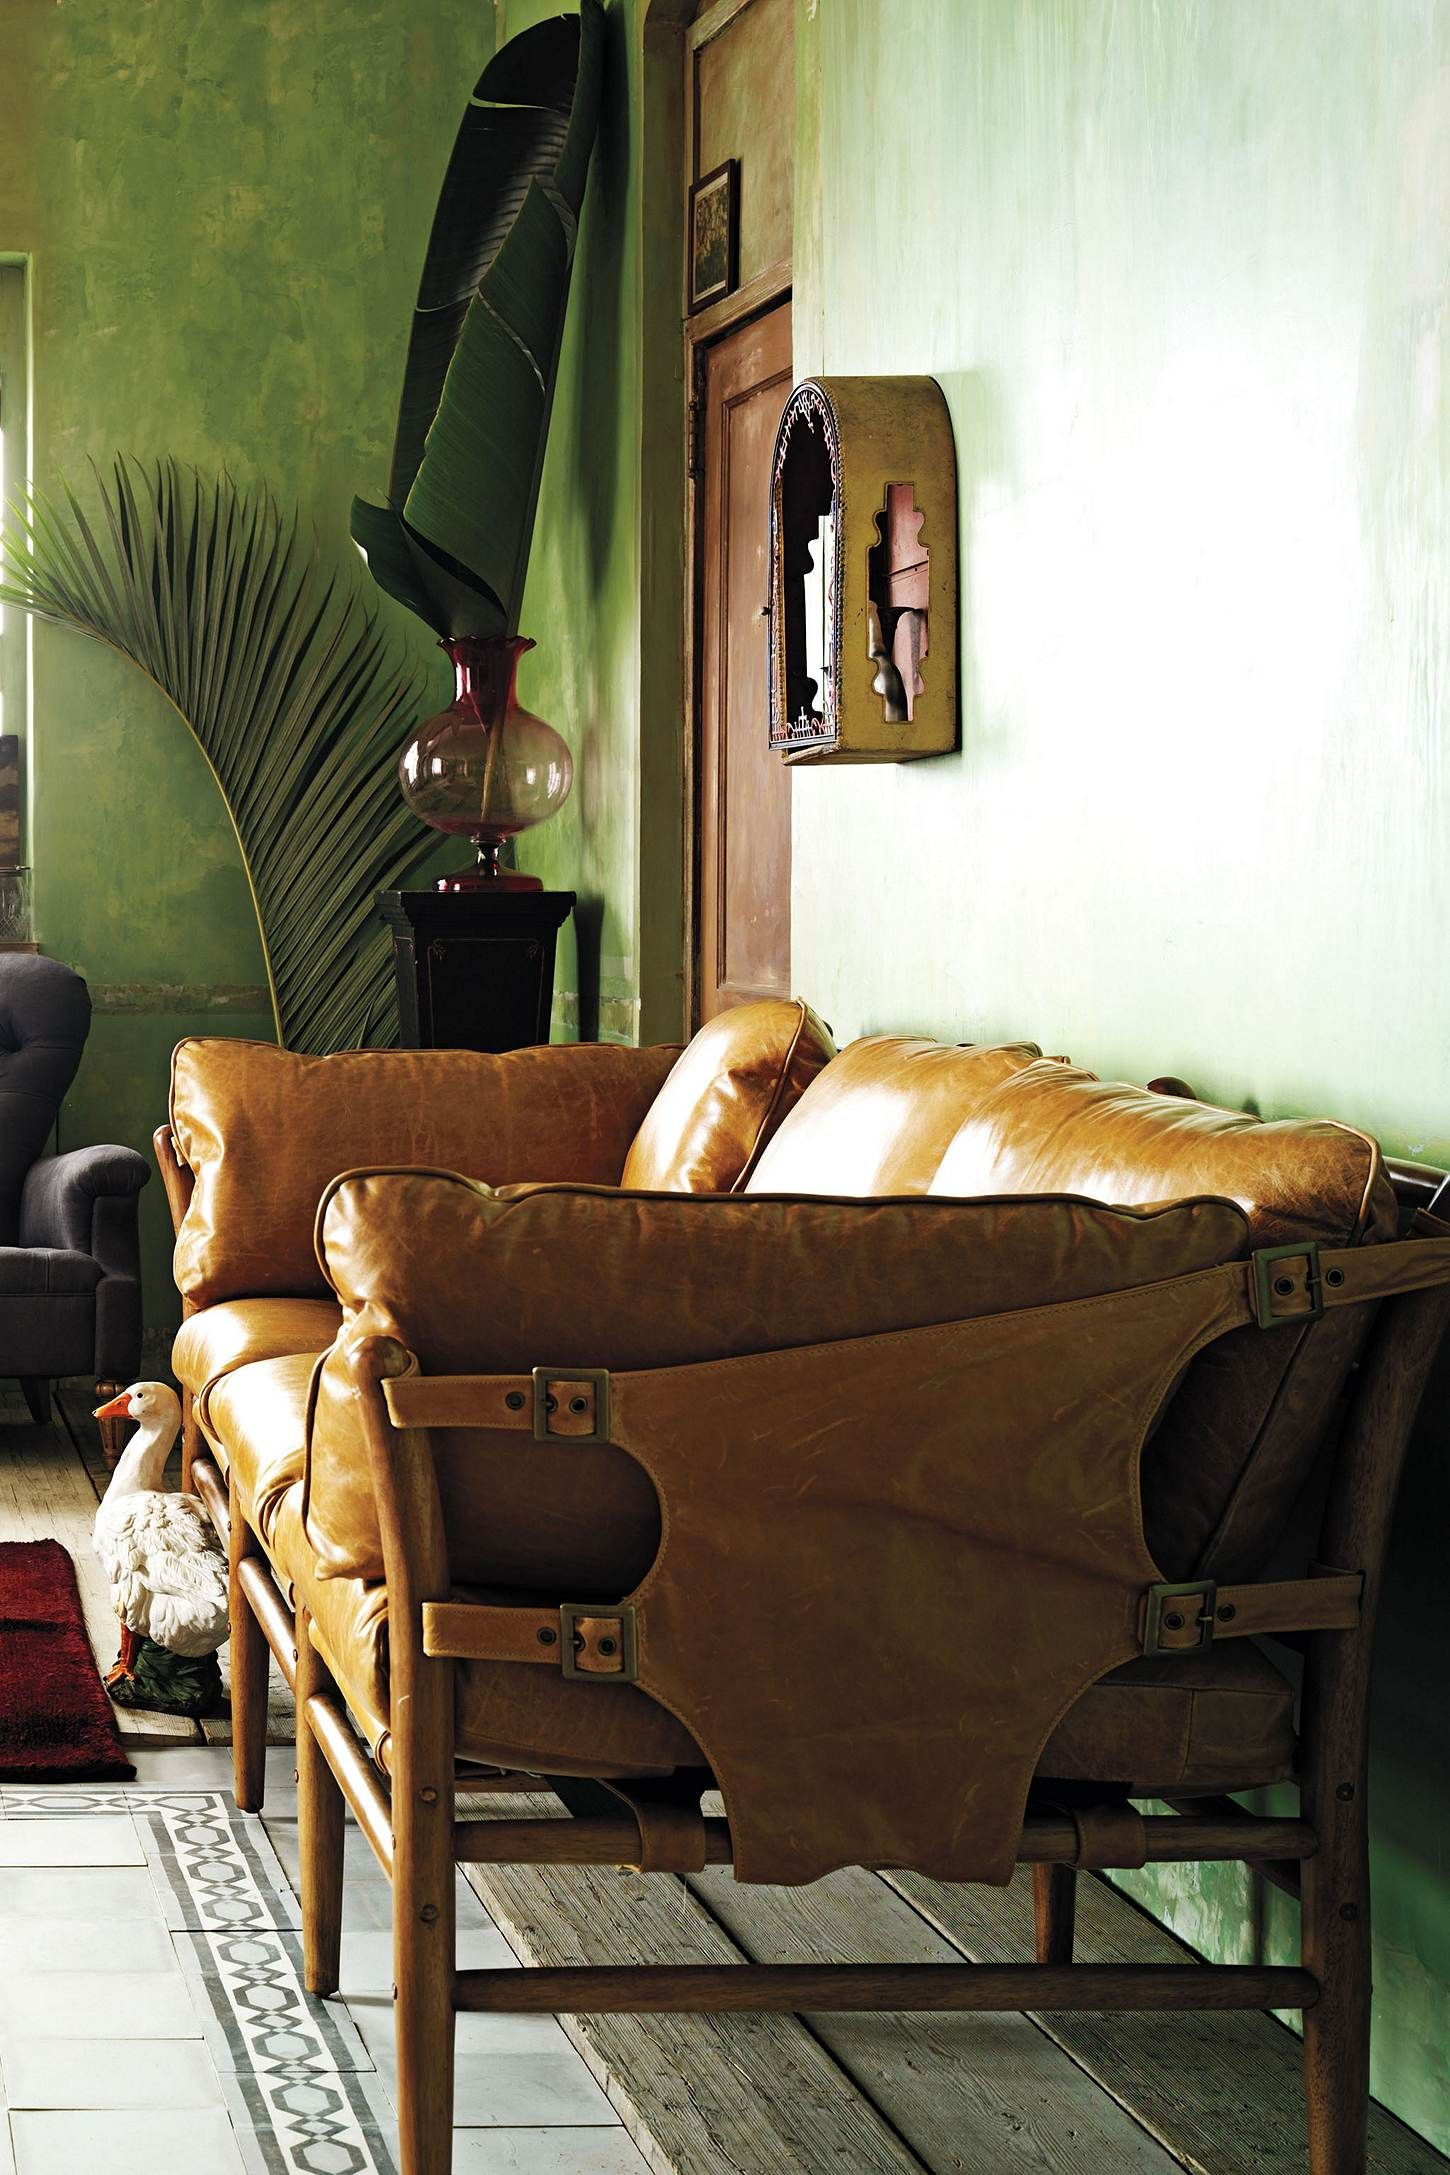 leather couch | Tucson Family Room ideas | Pinterest | Sillones ...